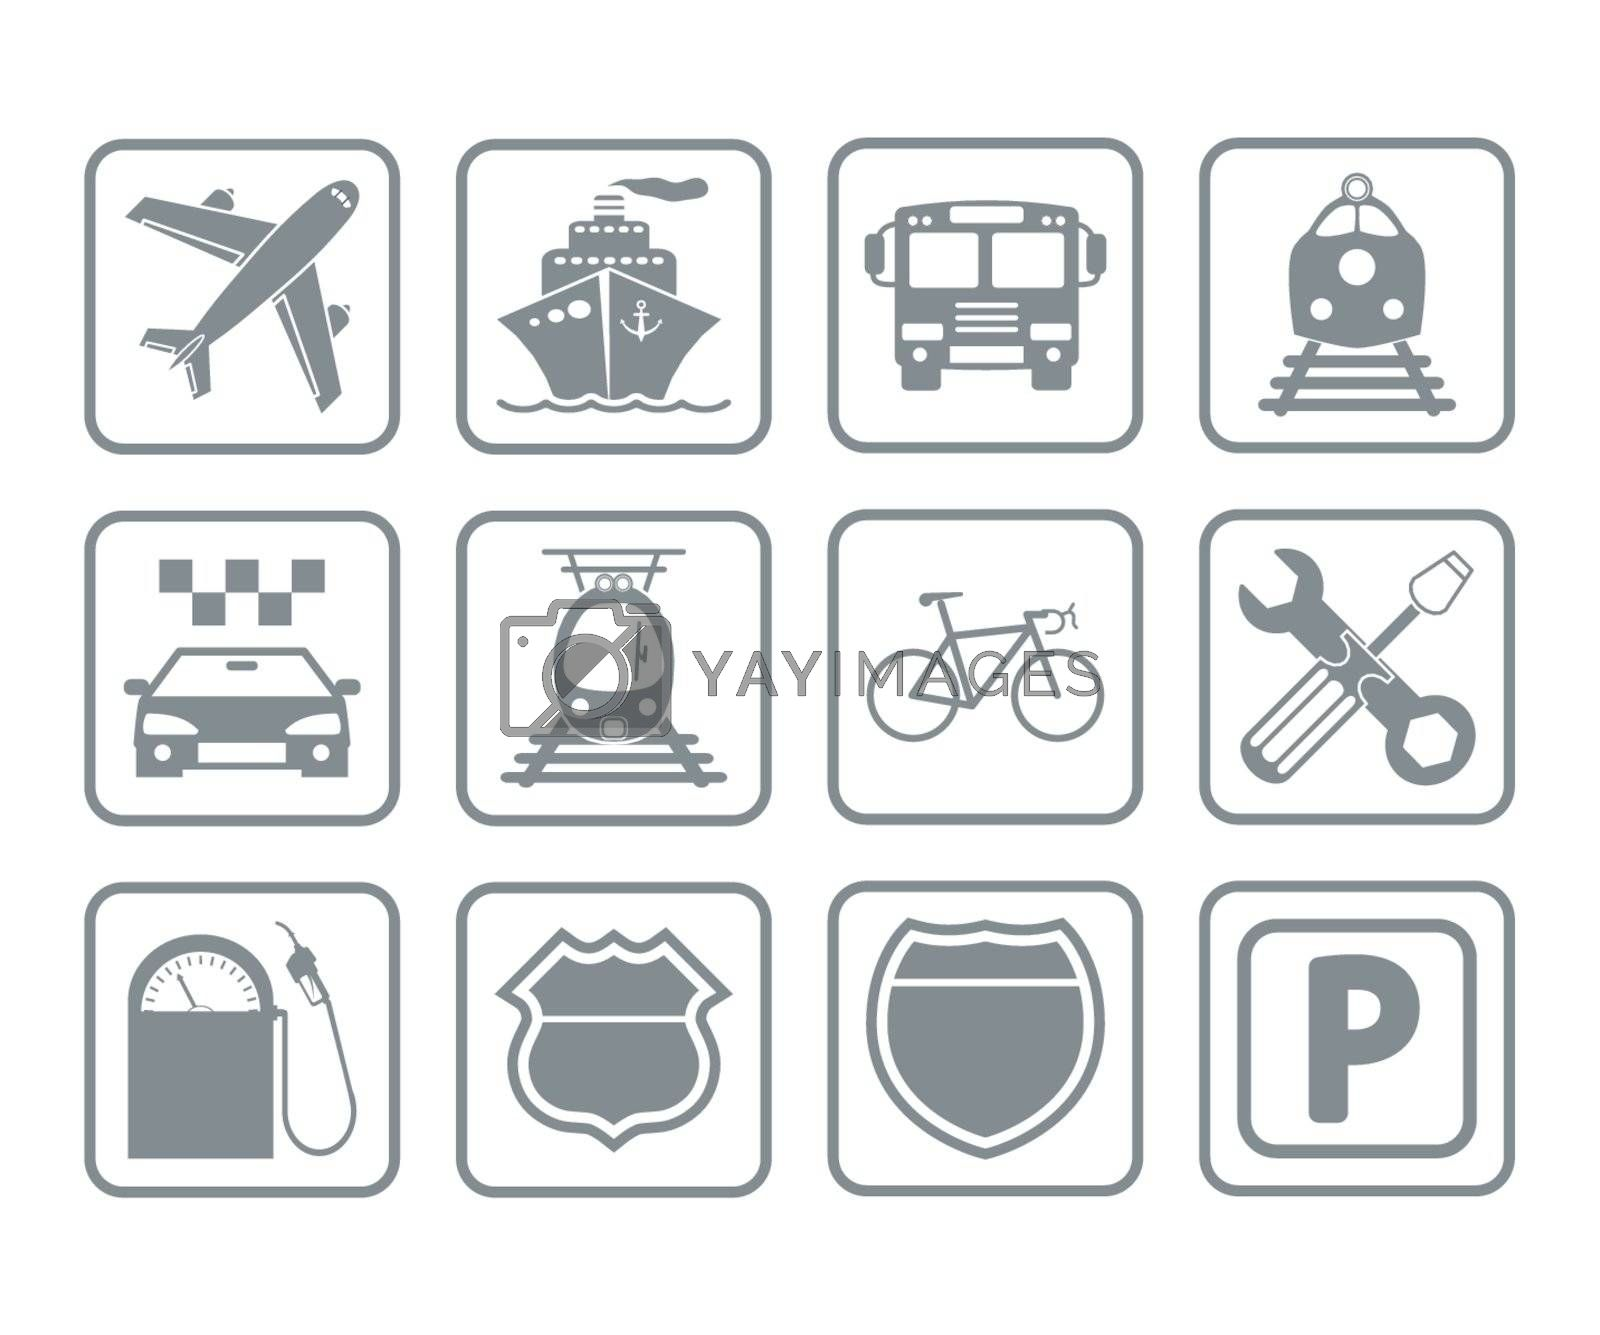 Transportation icons and signs. Vector illustration EPS 8.